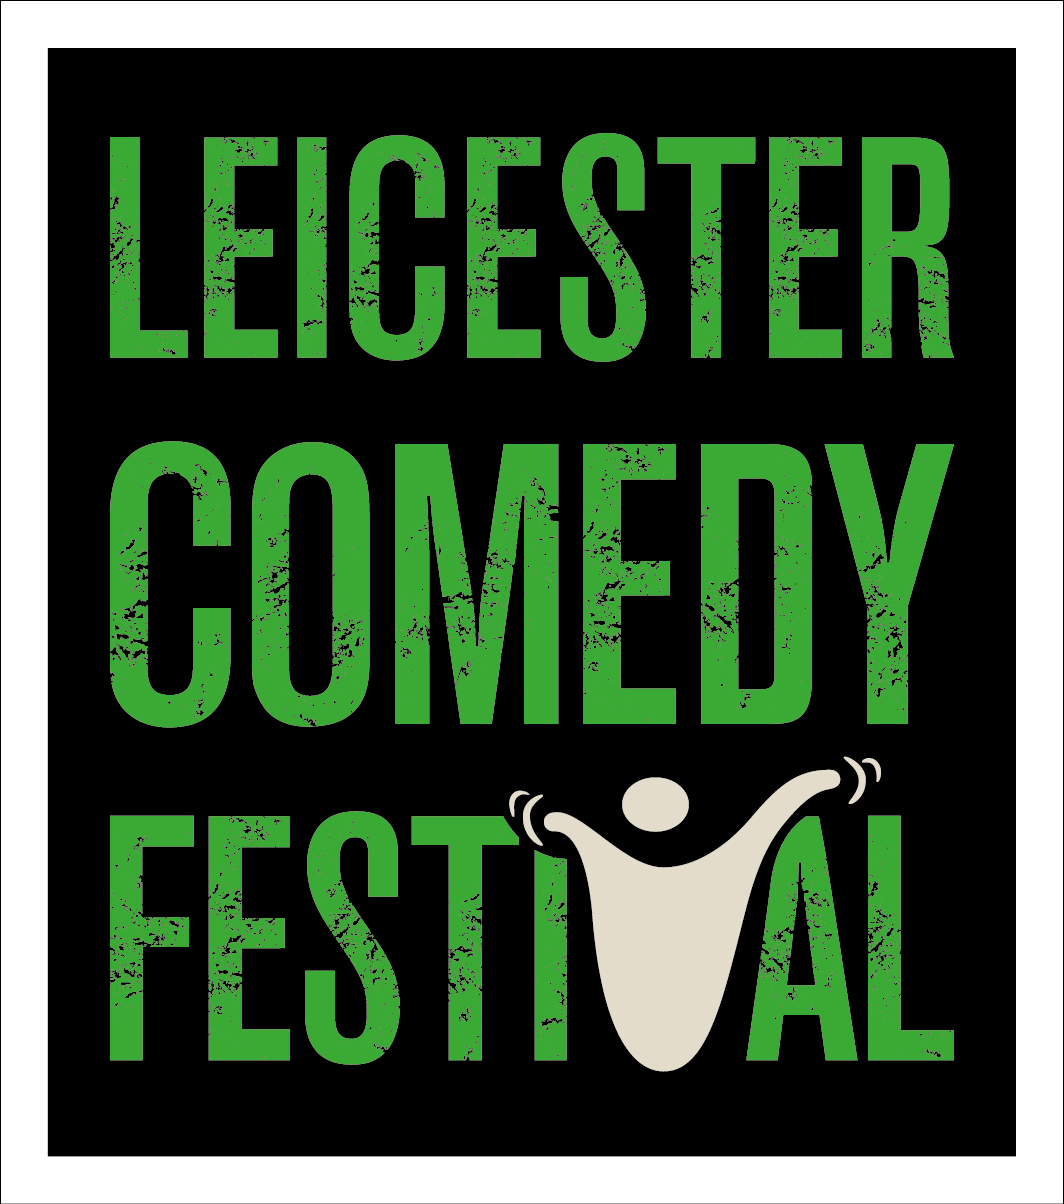 19th Feb: Bad Socialist-work in progress @ Leicester Comedy Festival